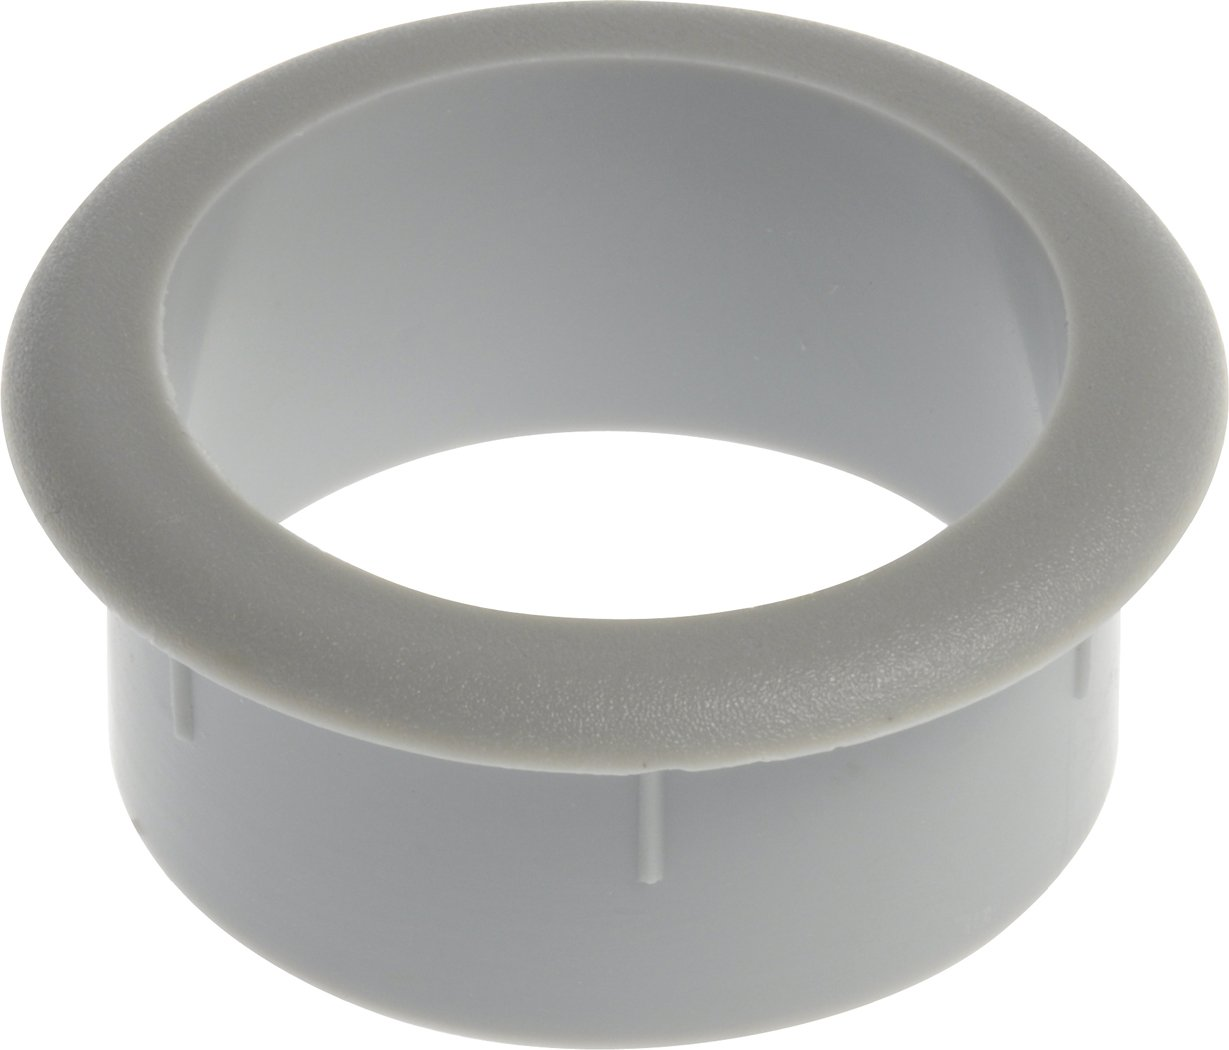 The Hillman Group 59339 1-1/2-Inch Grey Grommet without Cap, 2-Pack